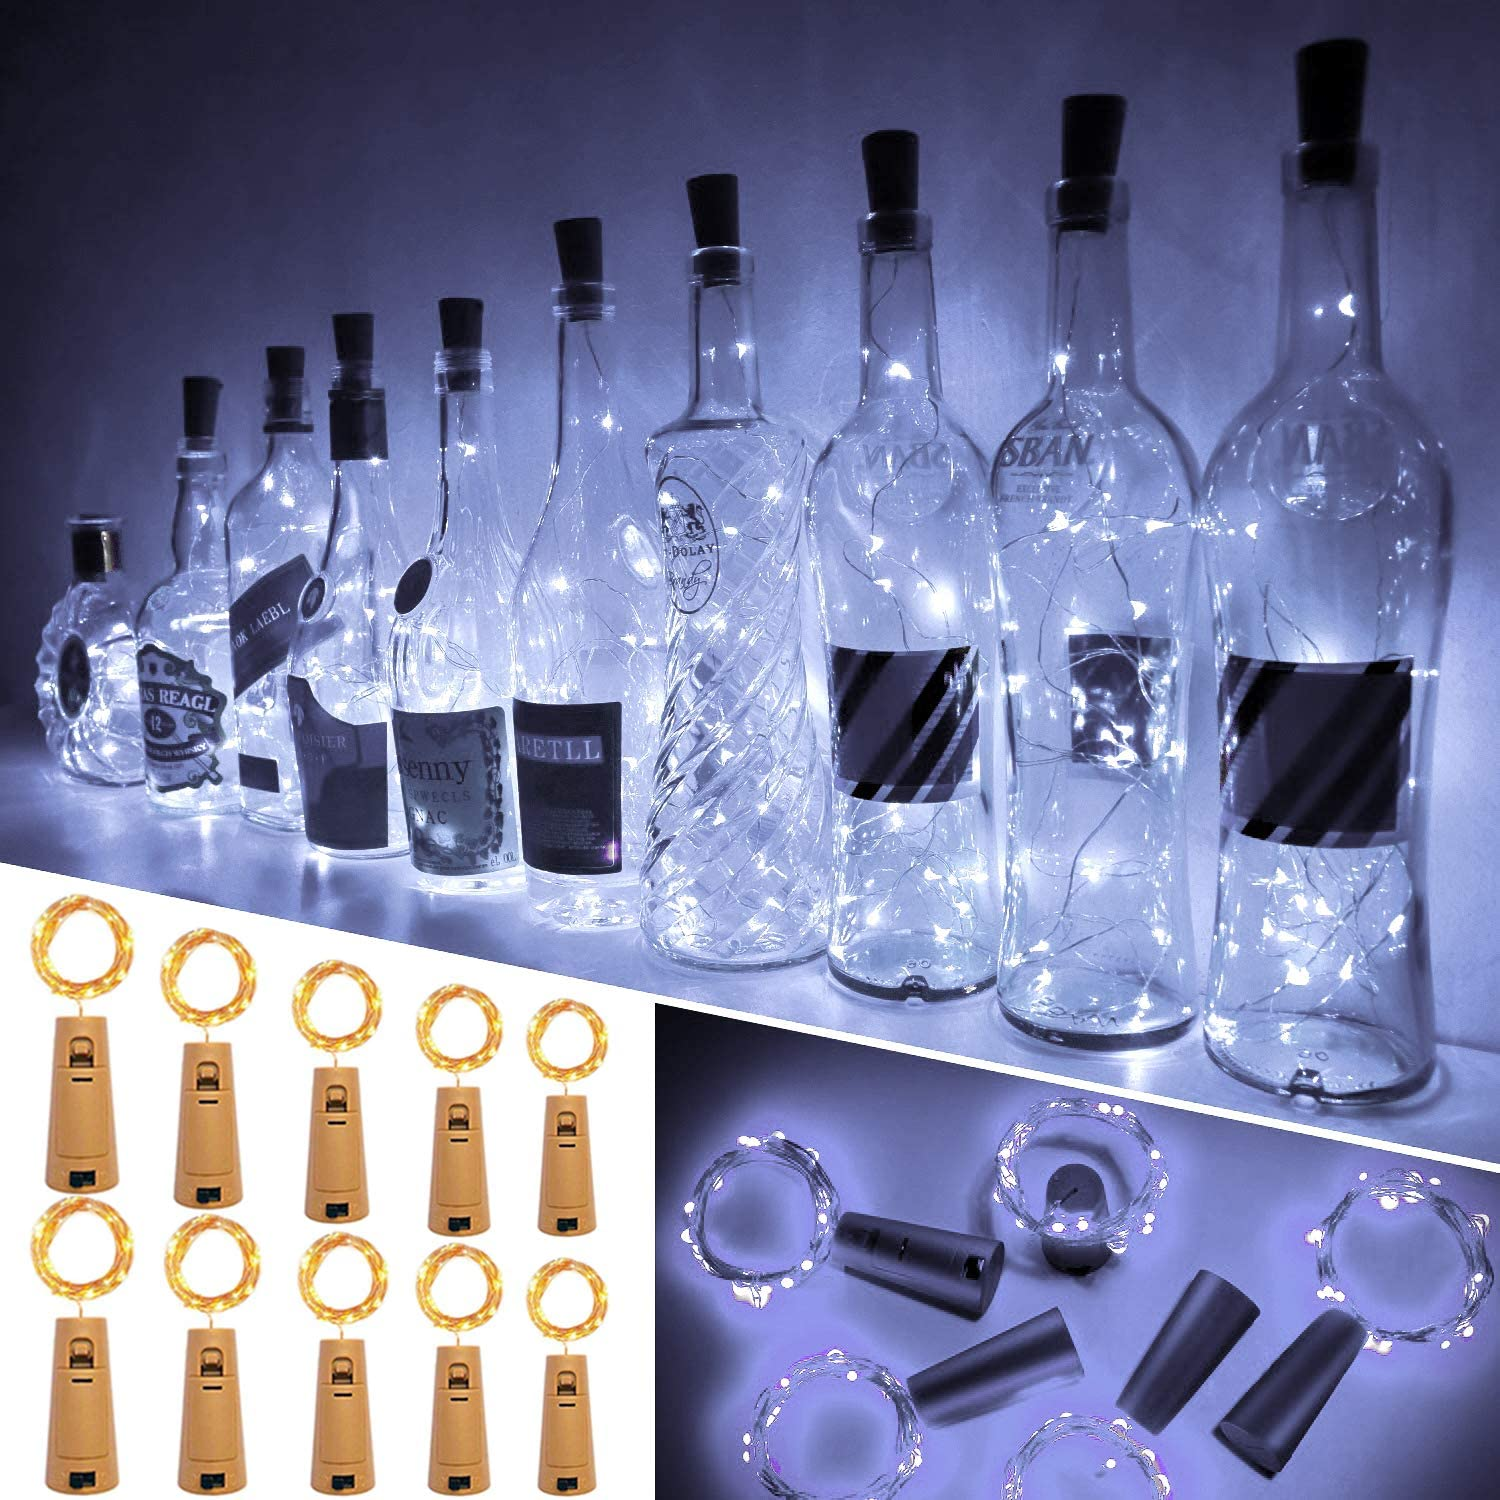 Animer and price revision Ariceleo Wine Bottle Lights with Cork Pack Led 20 Pre-Inst Dealing full price reduction 60 10